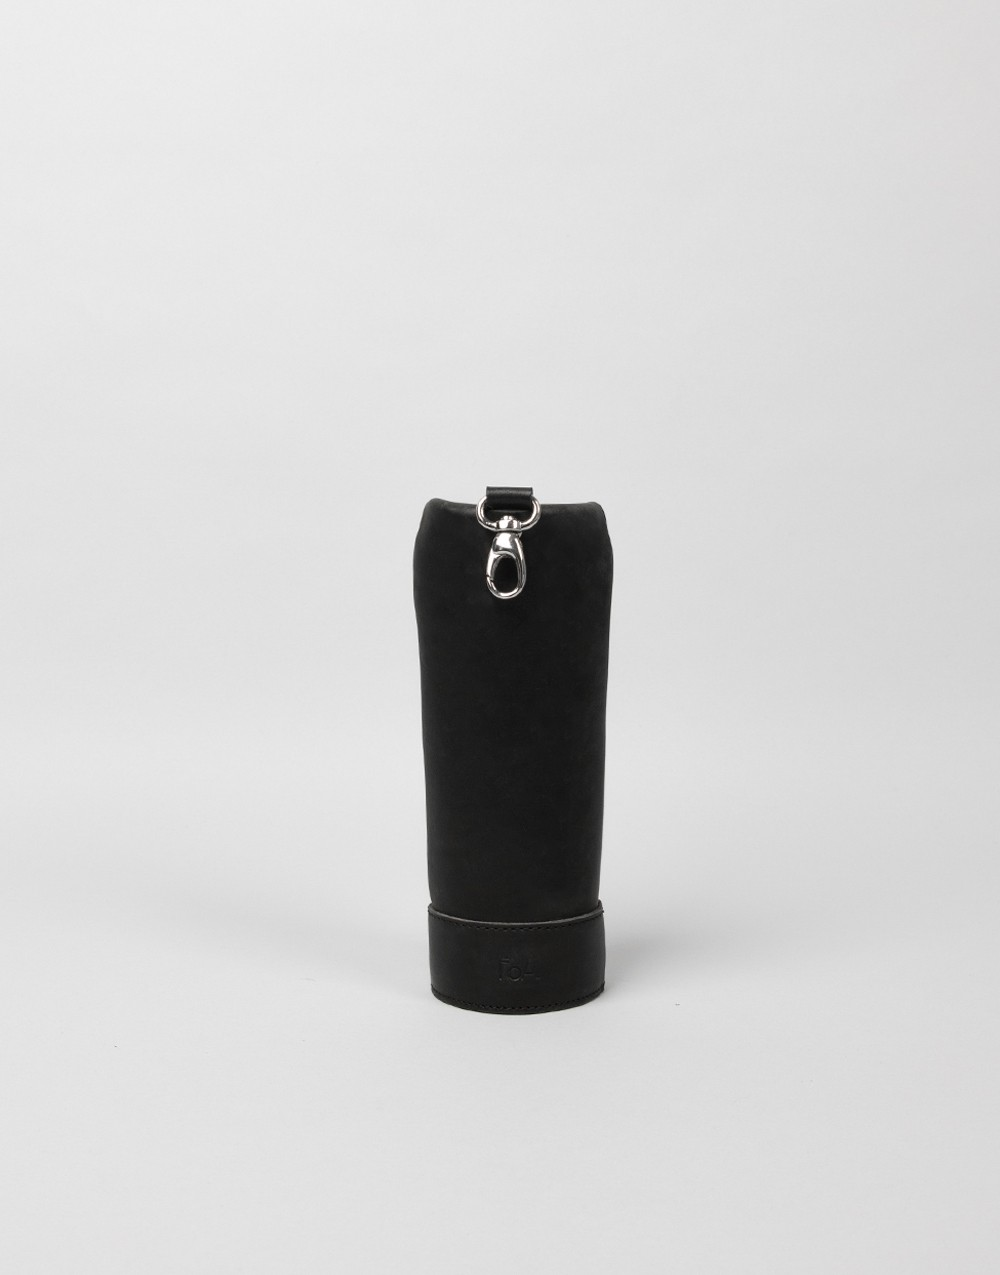 FoA. Ody Bottle Holder